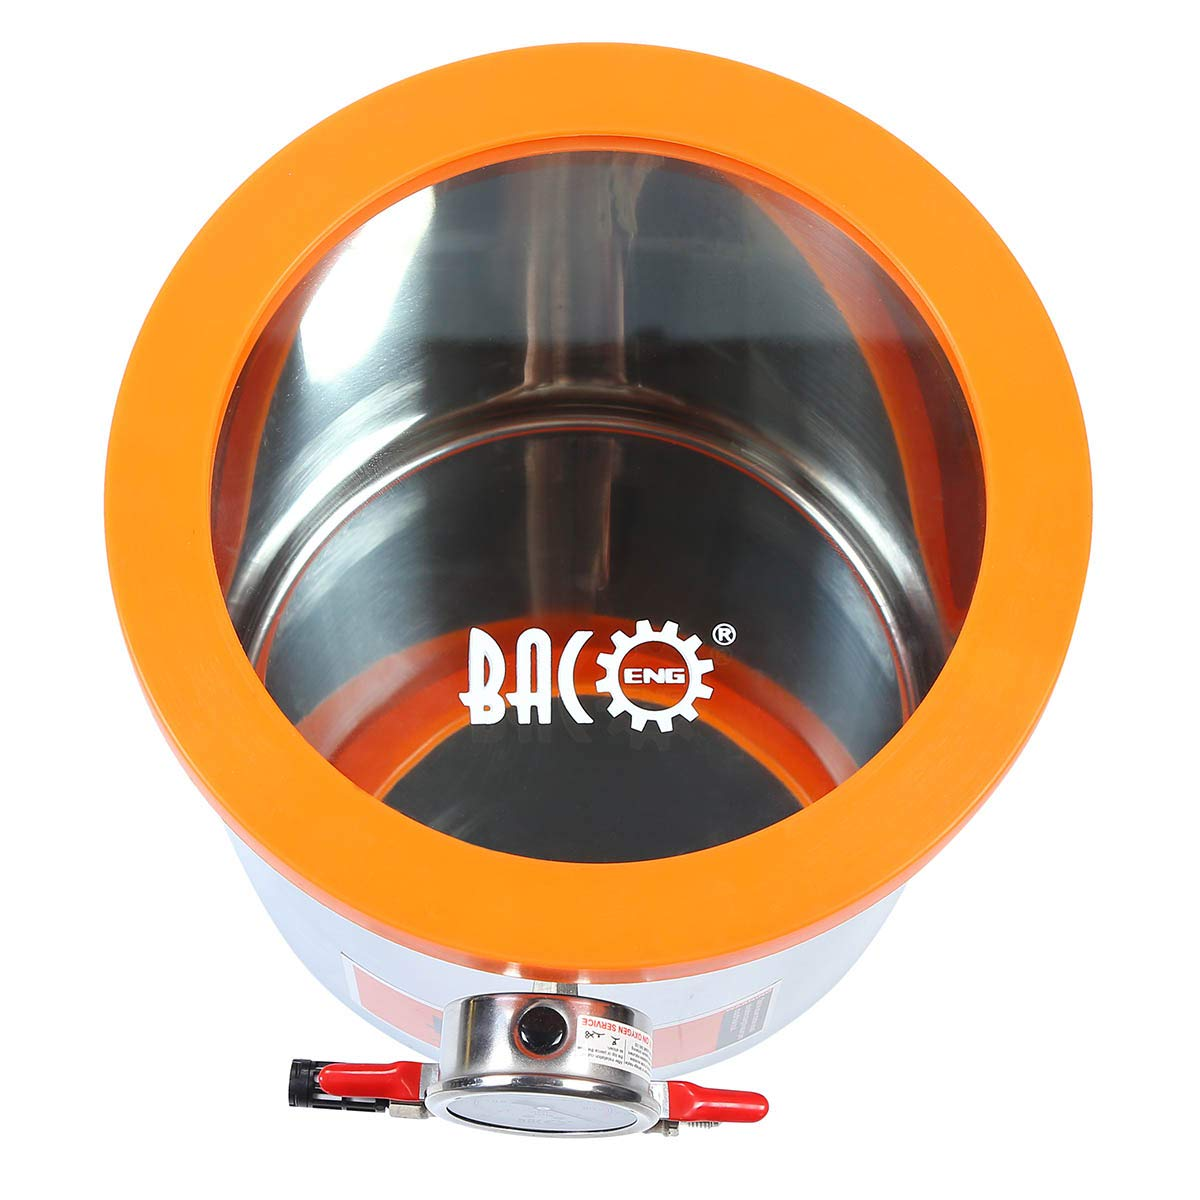 BACOENG 3 Gallon Tempered Glass Lid Stainless Steel Vacuum Chamer Perfect for stabilizing Wood, Degassing Silicones, Epoxies and Essential Oils by BACOENG (Image #2)